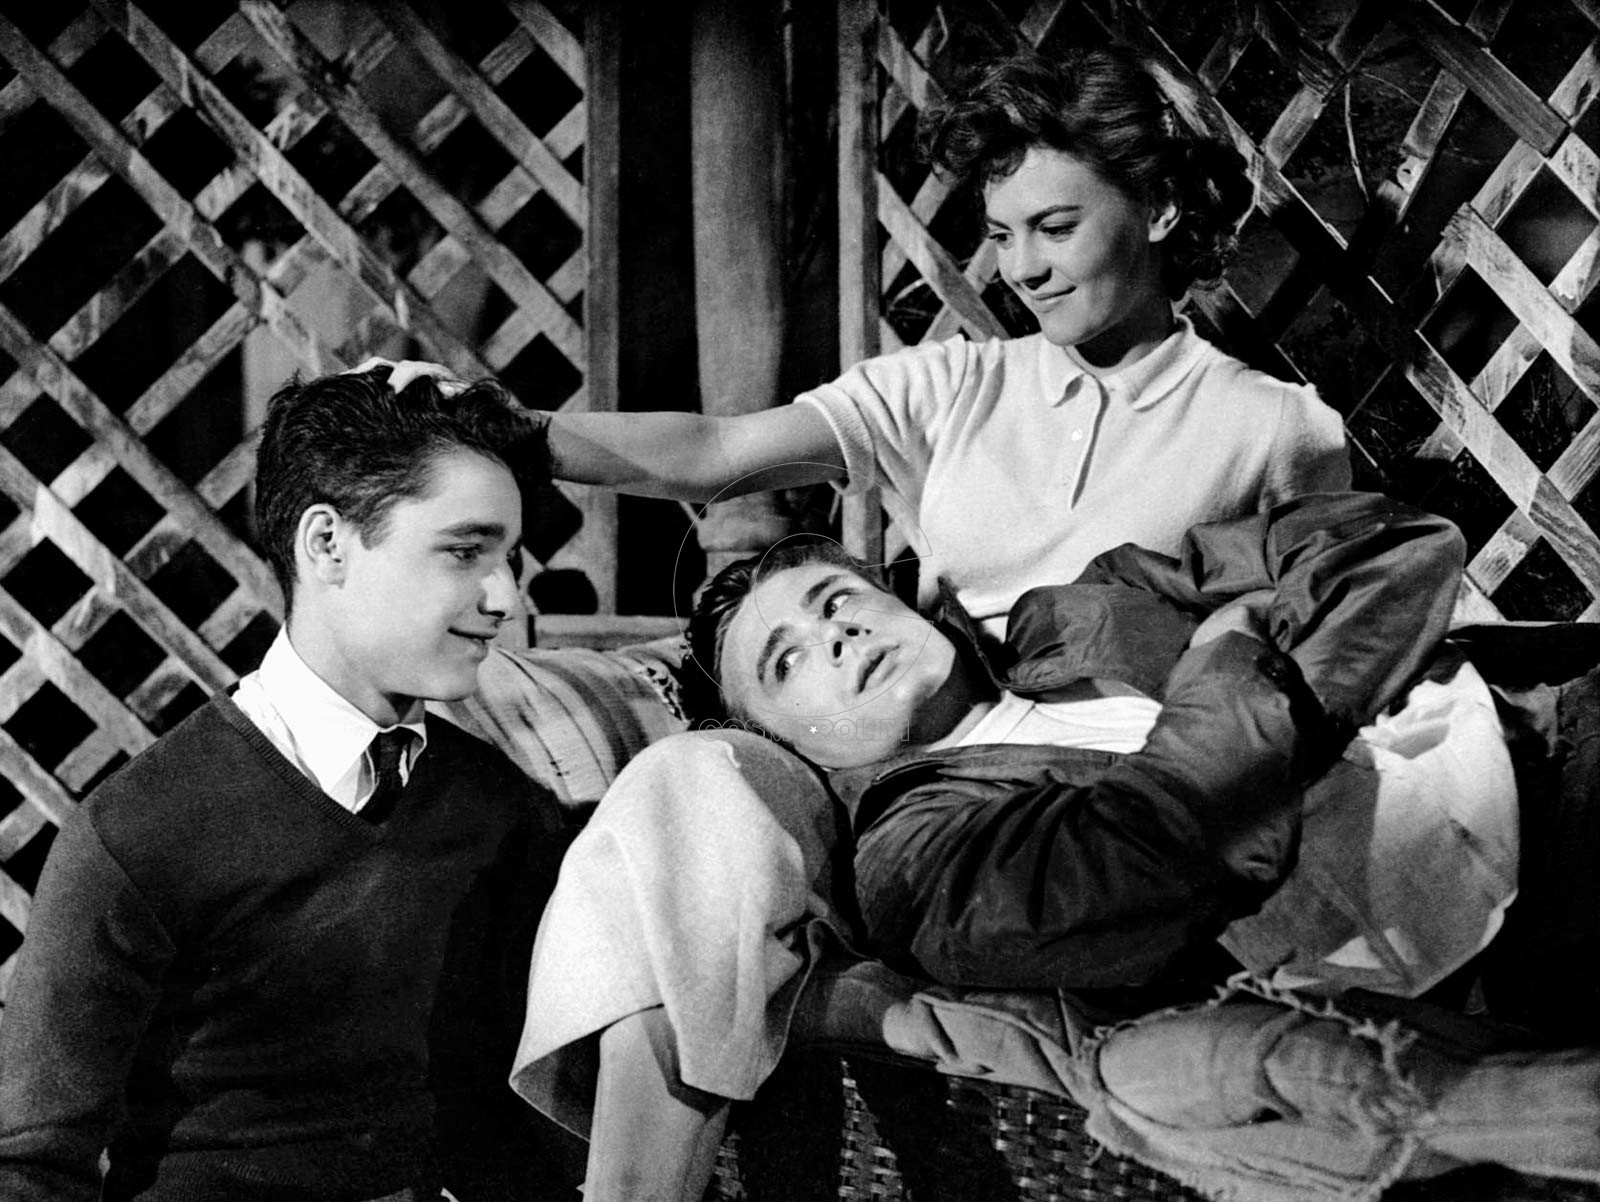 Sal-Mineo-Natalie-Wood-James-Dean-Rebel